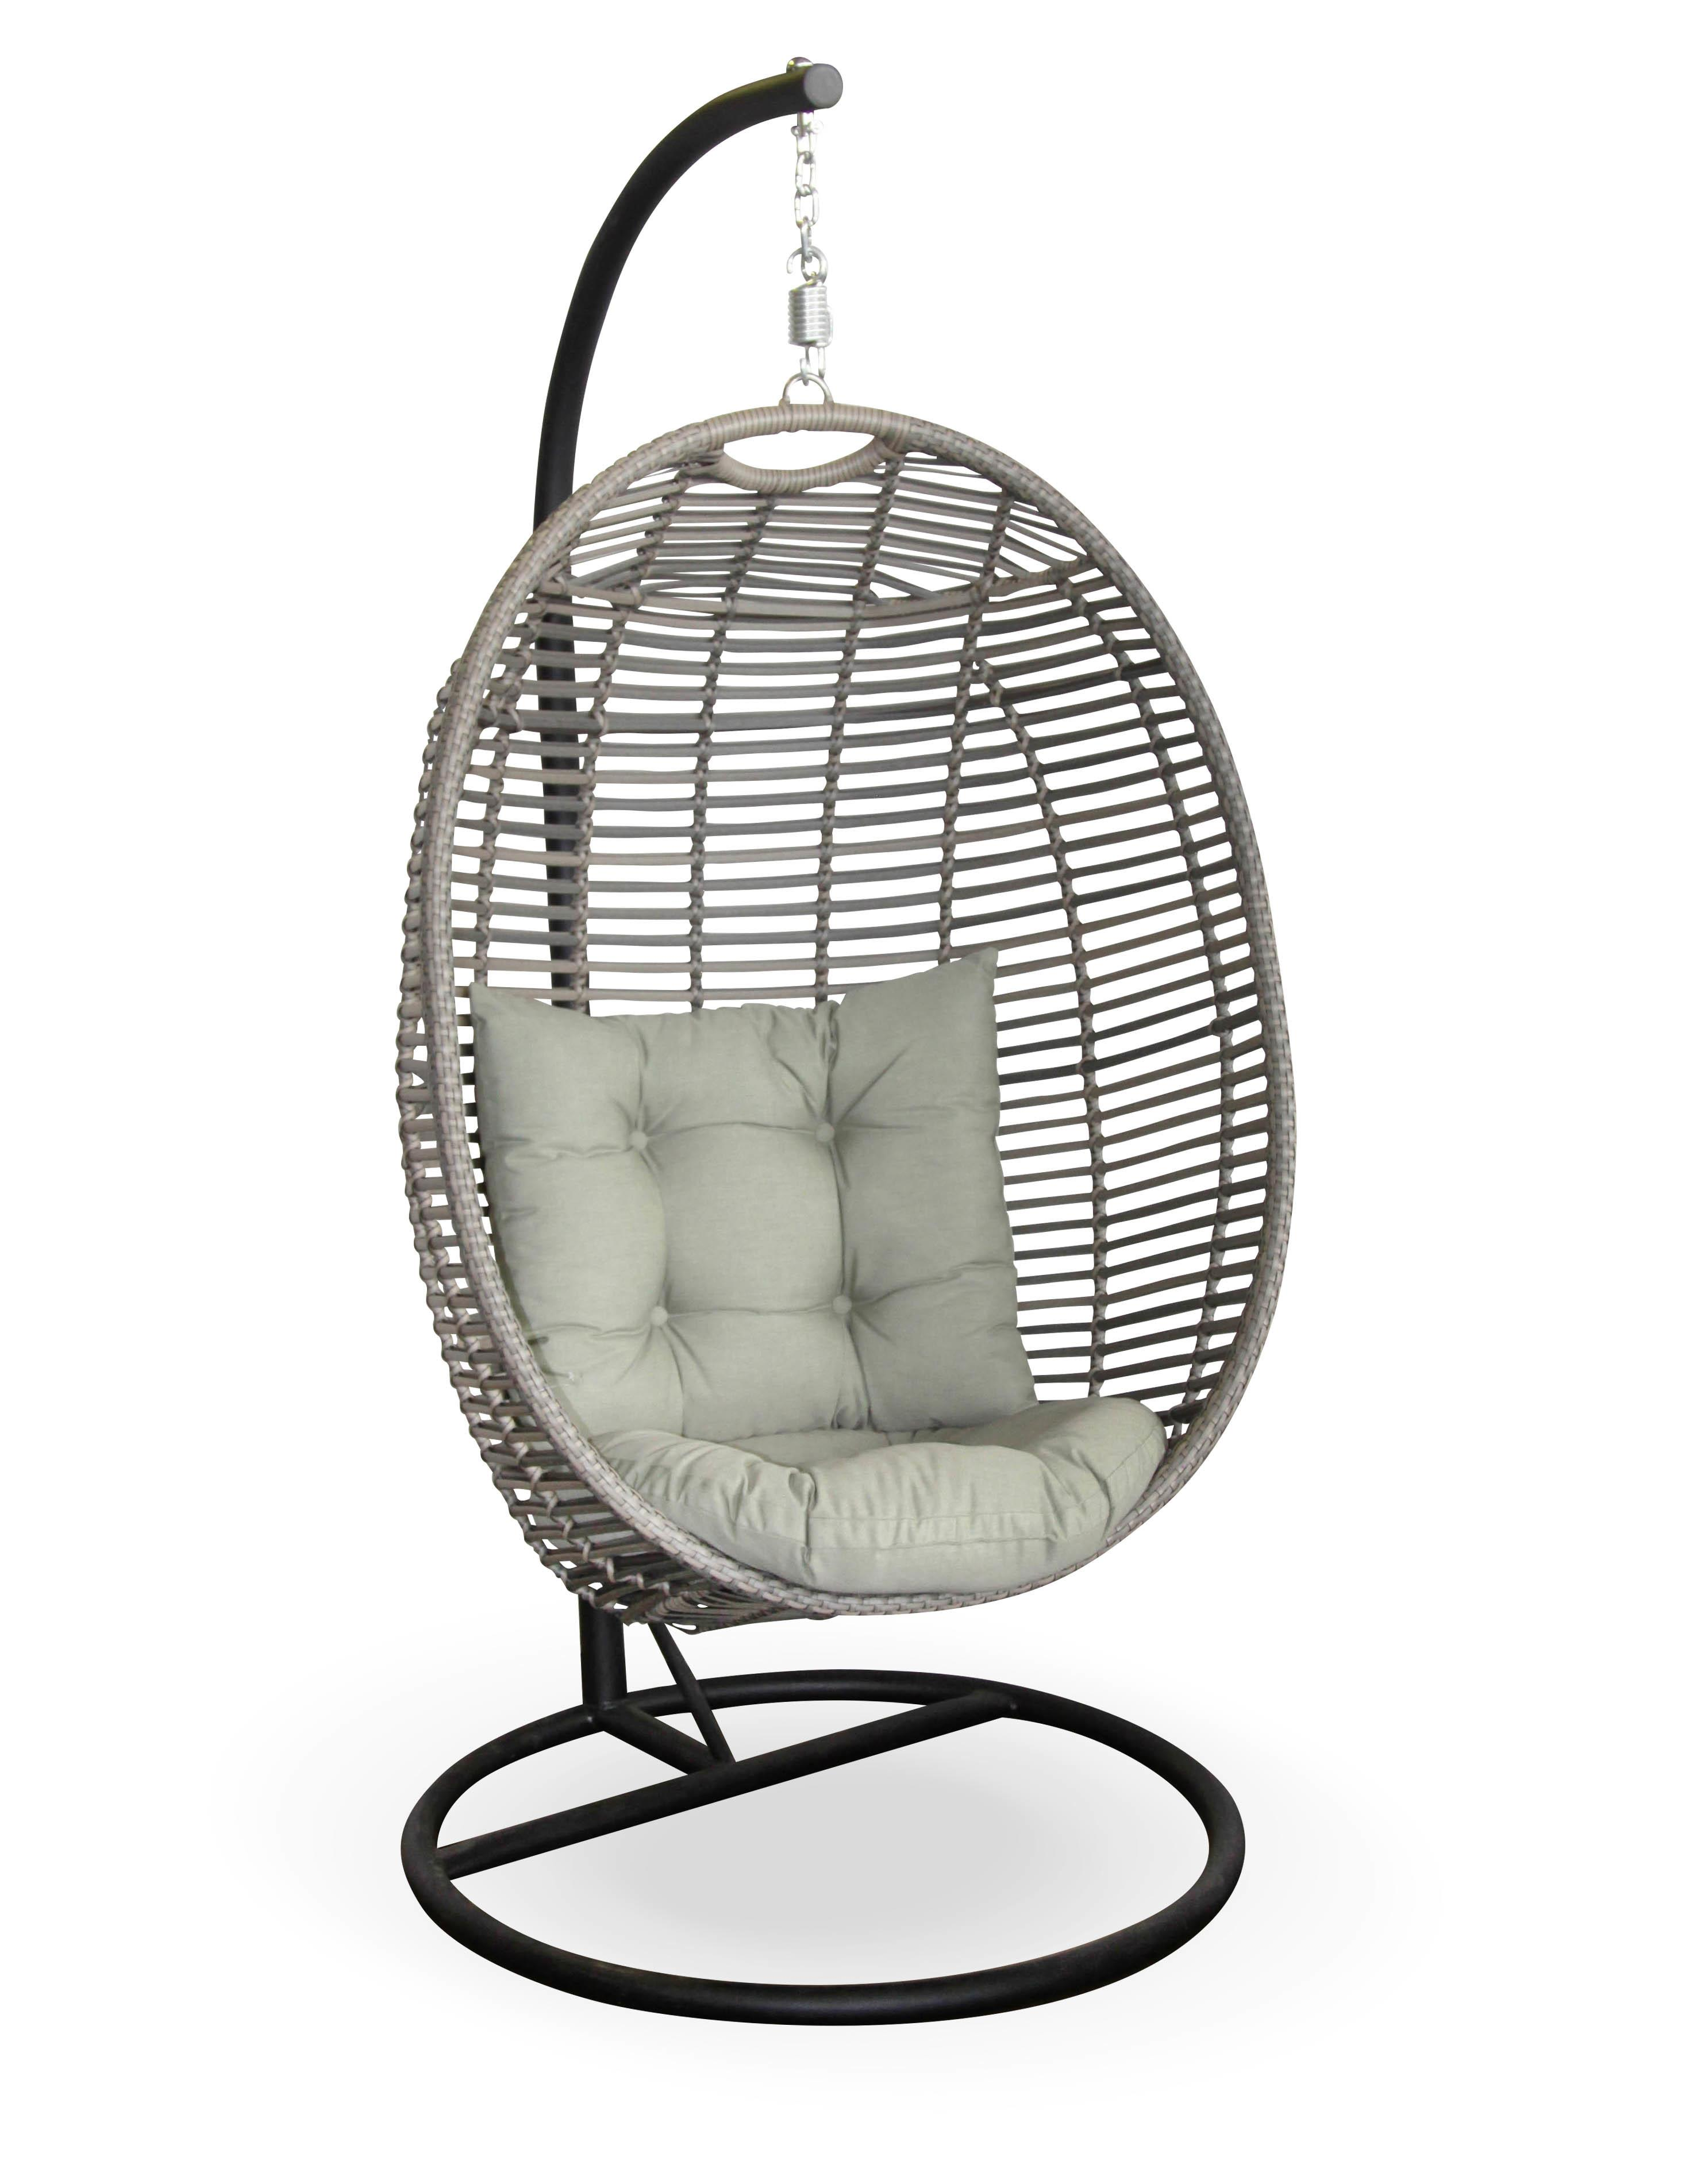 Grey Wicker Hanging Swing Chair Egg Shape Completed